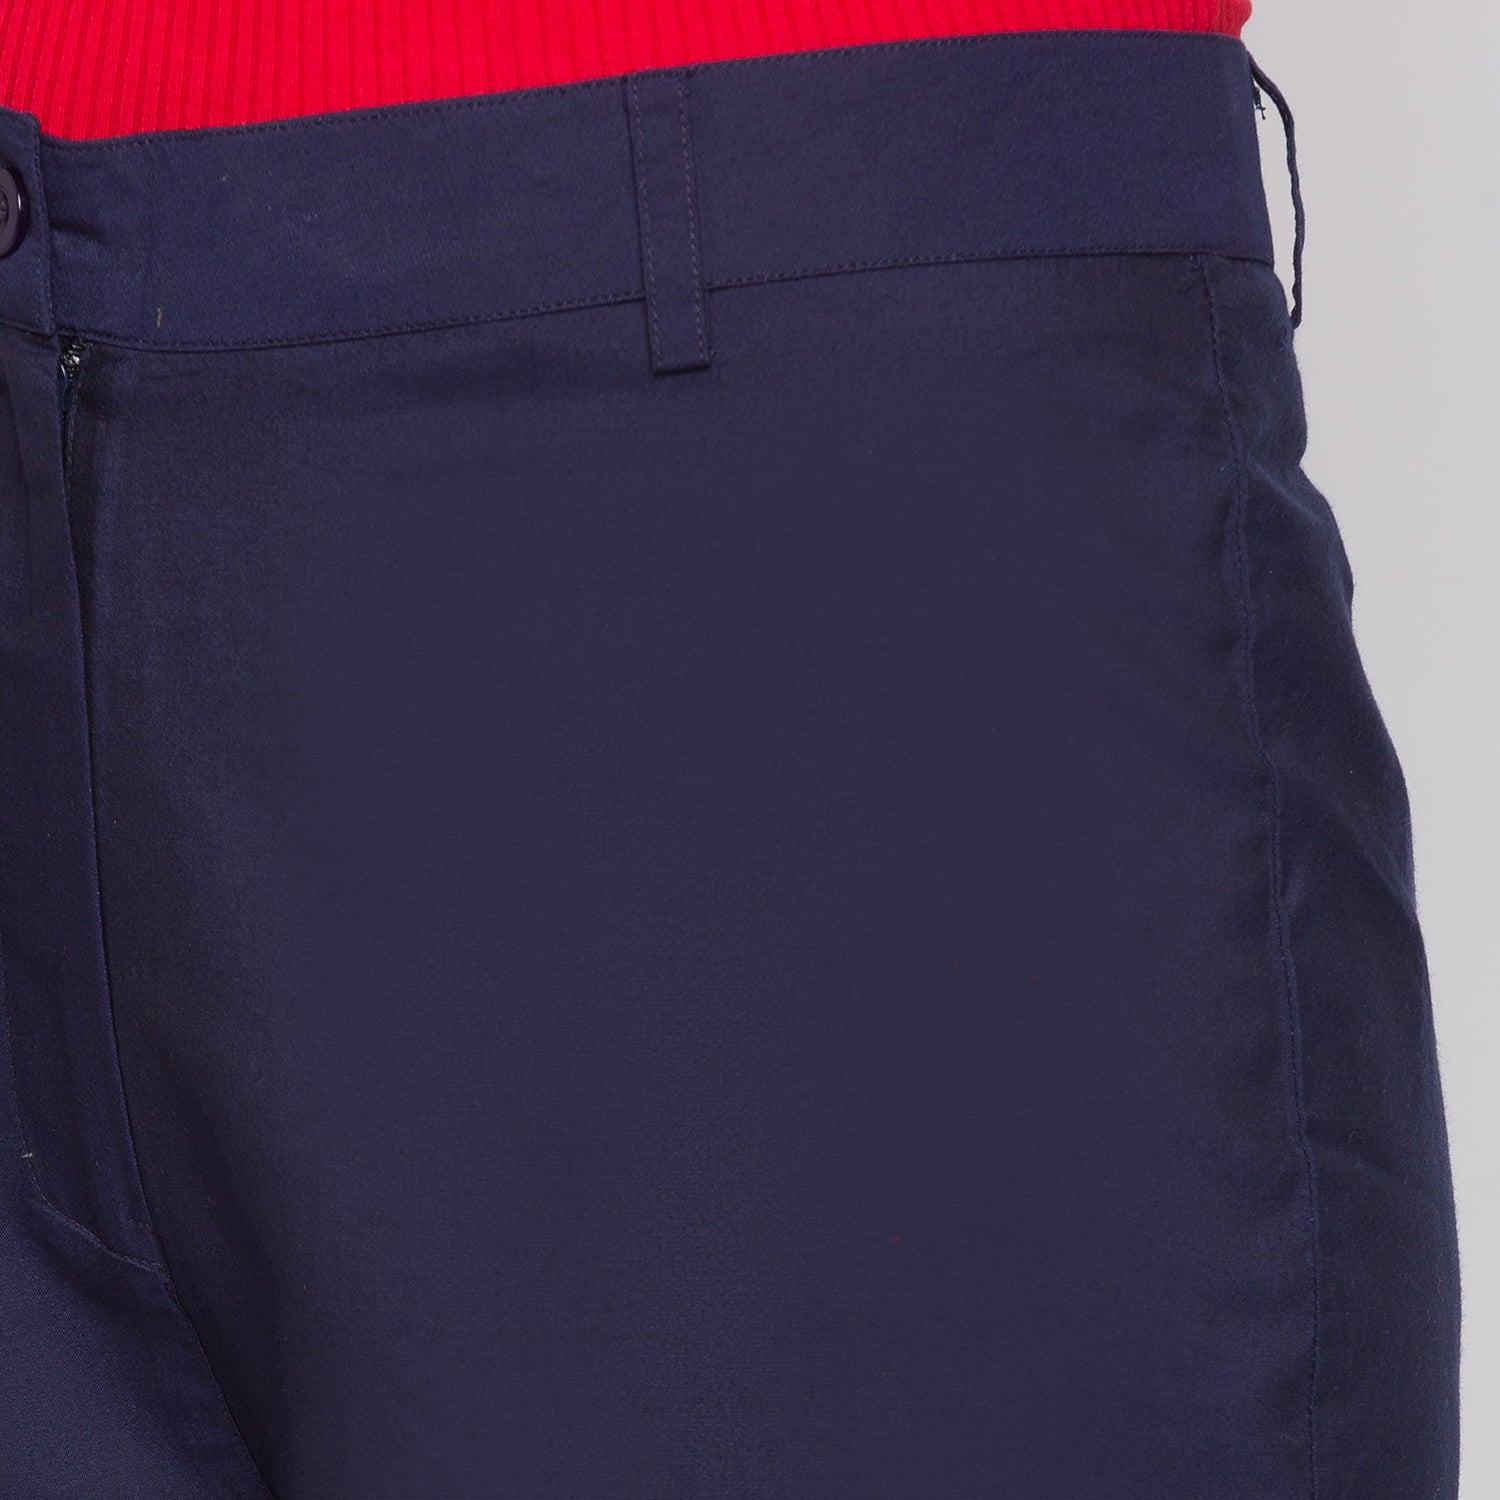 GLOBUS Navy Blue Solid Trousers-5